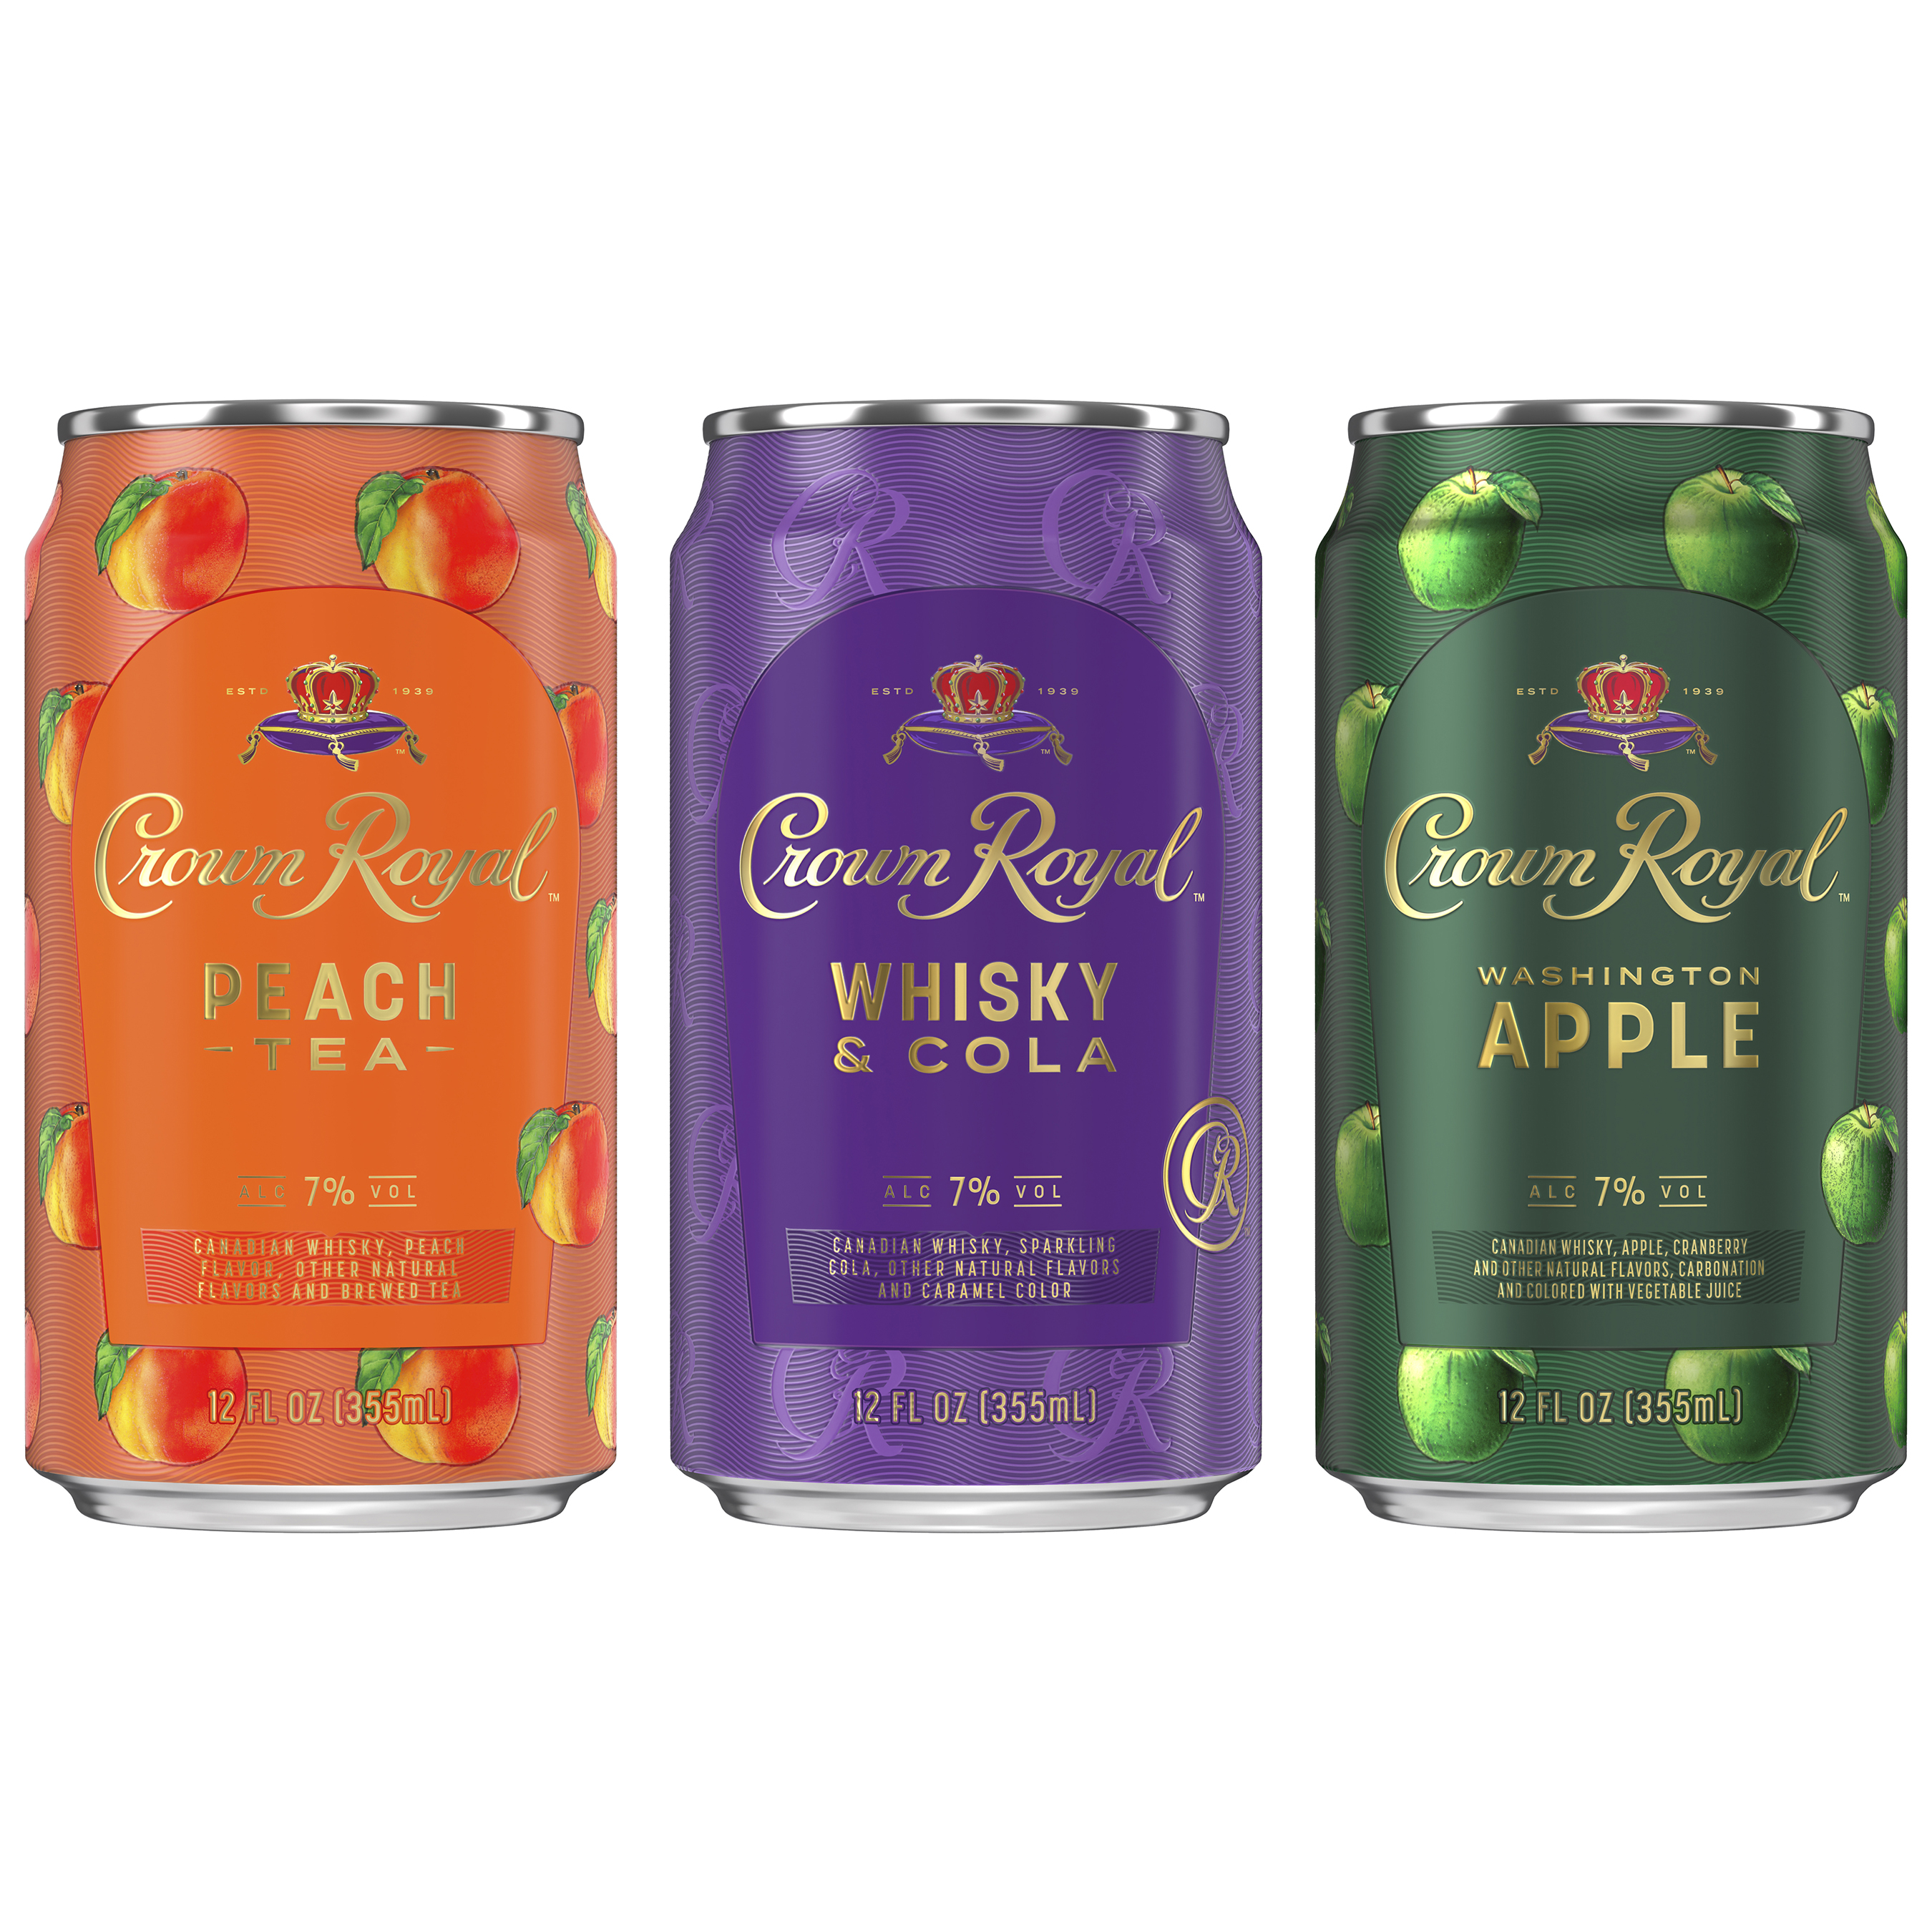 Crown Royal Launches New Ready to Drink Cocktails in a Can